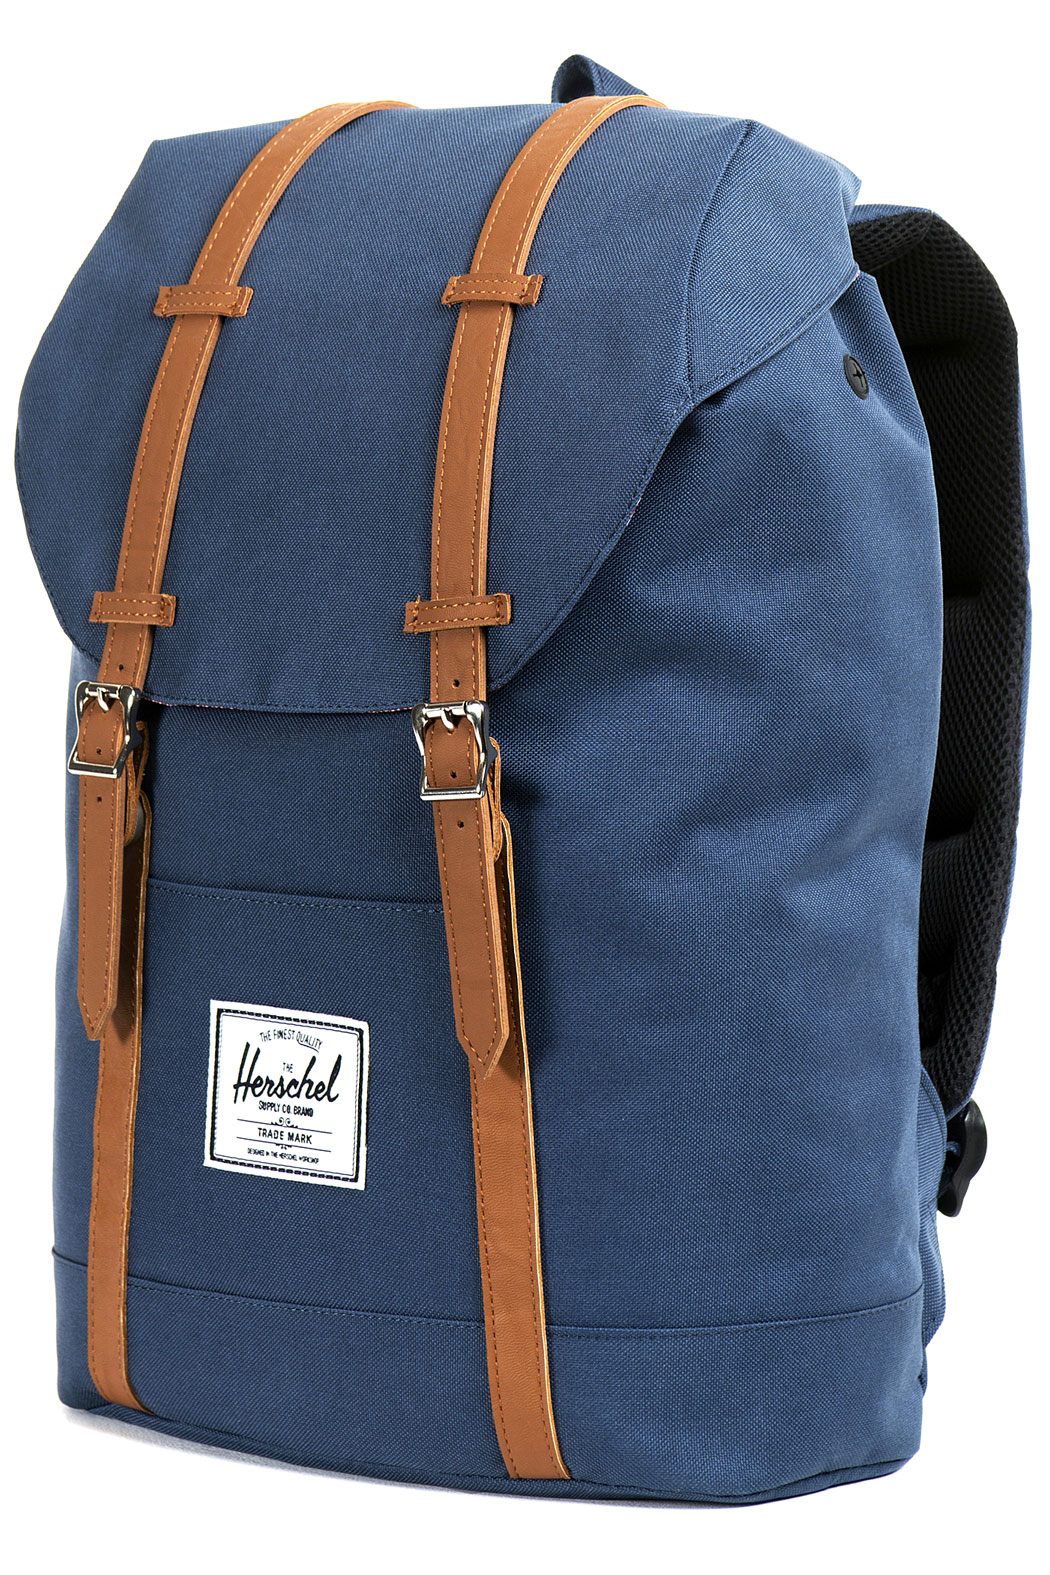 herschel retreat backpack 19 5l navy tan buy at skatedeluxe. Black Bedroom Furniture Sets. Home Design Ideas